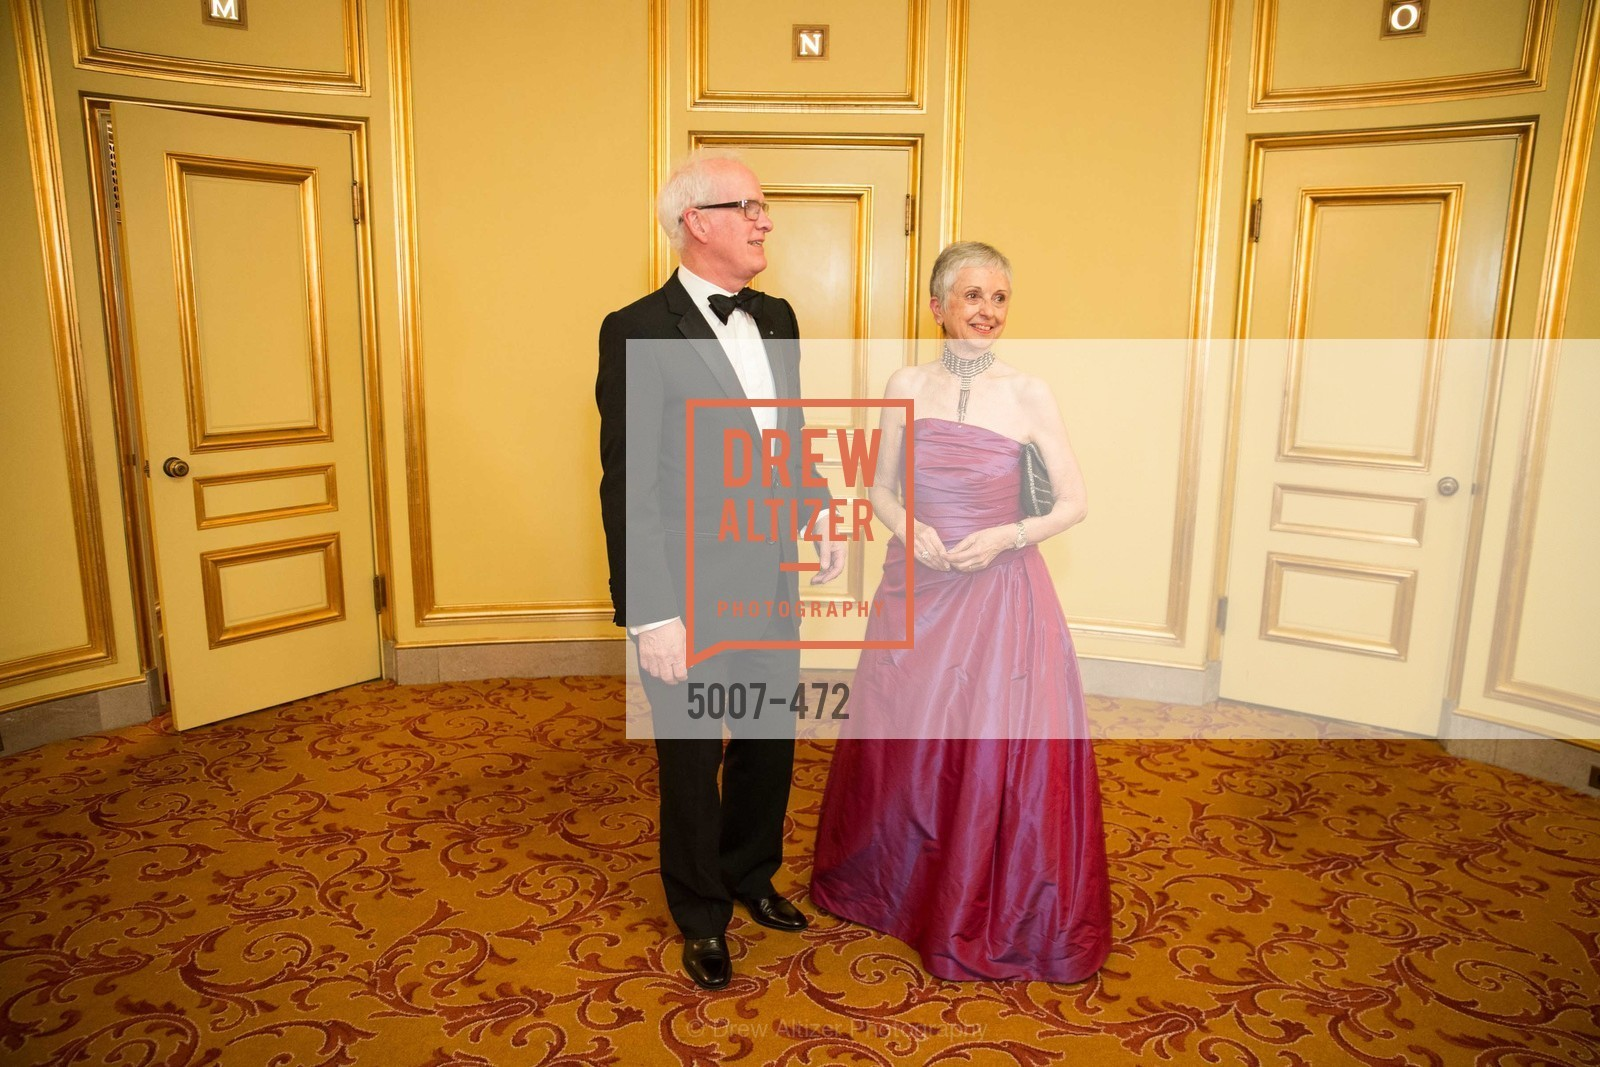 Helgi Tomasson, Marlene Tomasson, SAN FRANCISCO BALLET Opening Night Gala: PHENOMENAL - Intermission & Dinner, US. SF City Hall, January 22nd, 2014,Drew Altizer, Drew Altizer Photography, full-service agency, private events, San Francisco photographer, photographer california